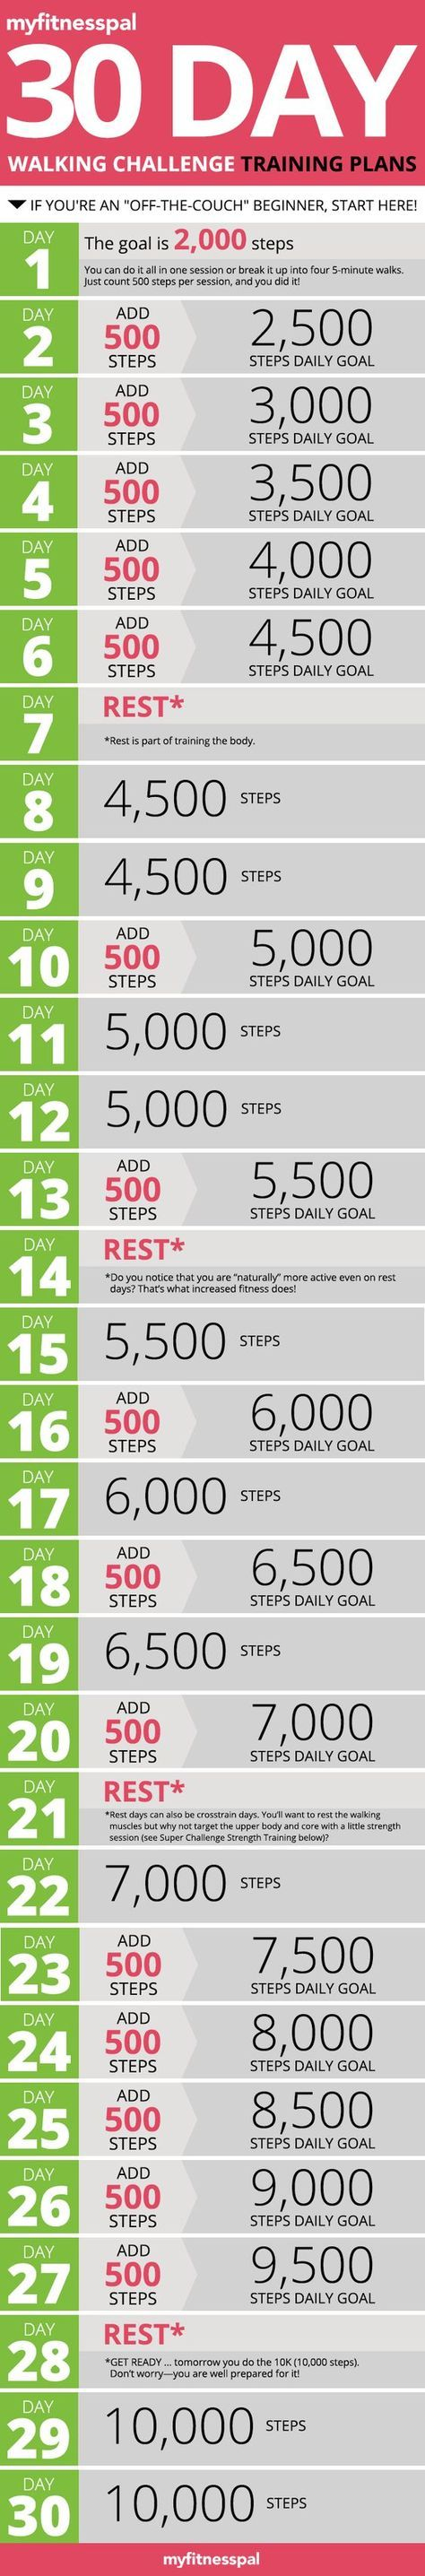 Contrary to popular belief…You can lose weight from just walking.In fact, it's actually relatively simple to lose one pound per week by building the walking habit.More importantly, you can do it without following a fad diet or subjecting yourself to one of those grueling exercise programs advertised on television. The trick to walking for weight …